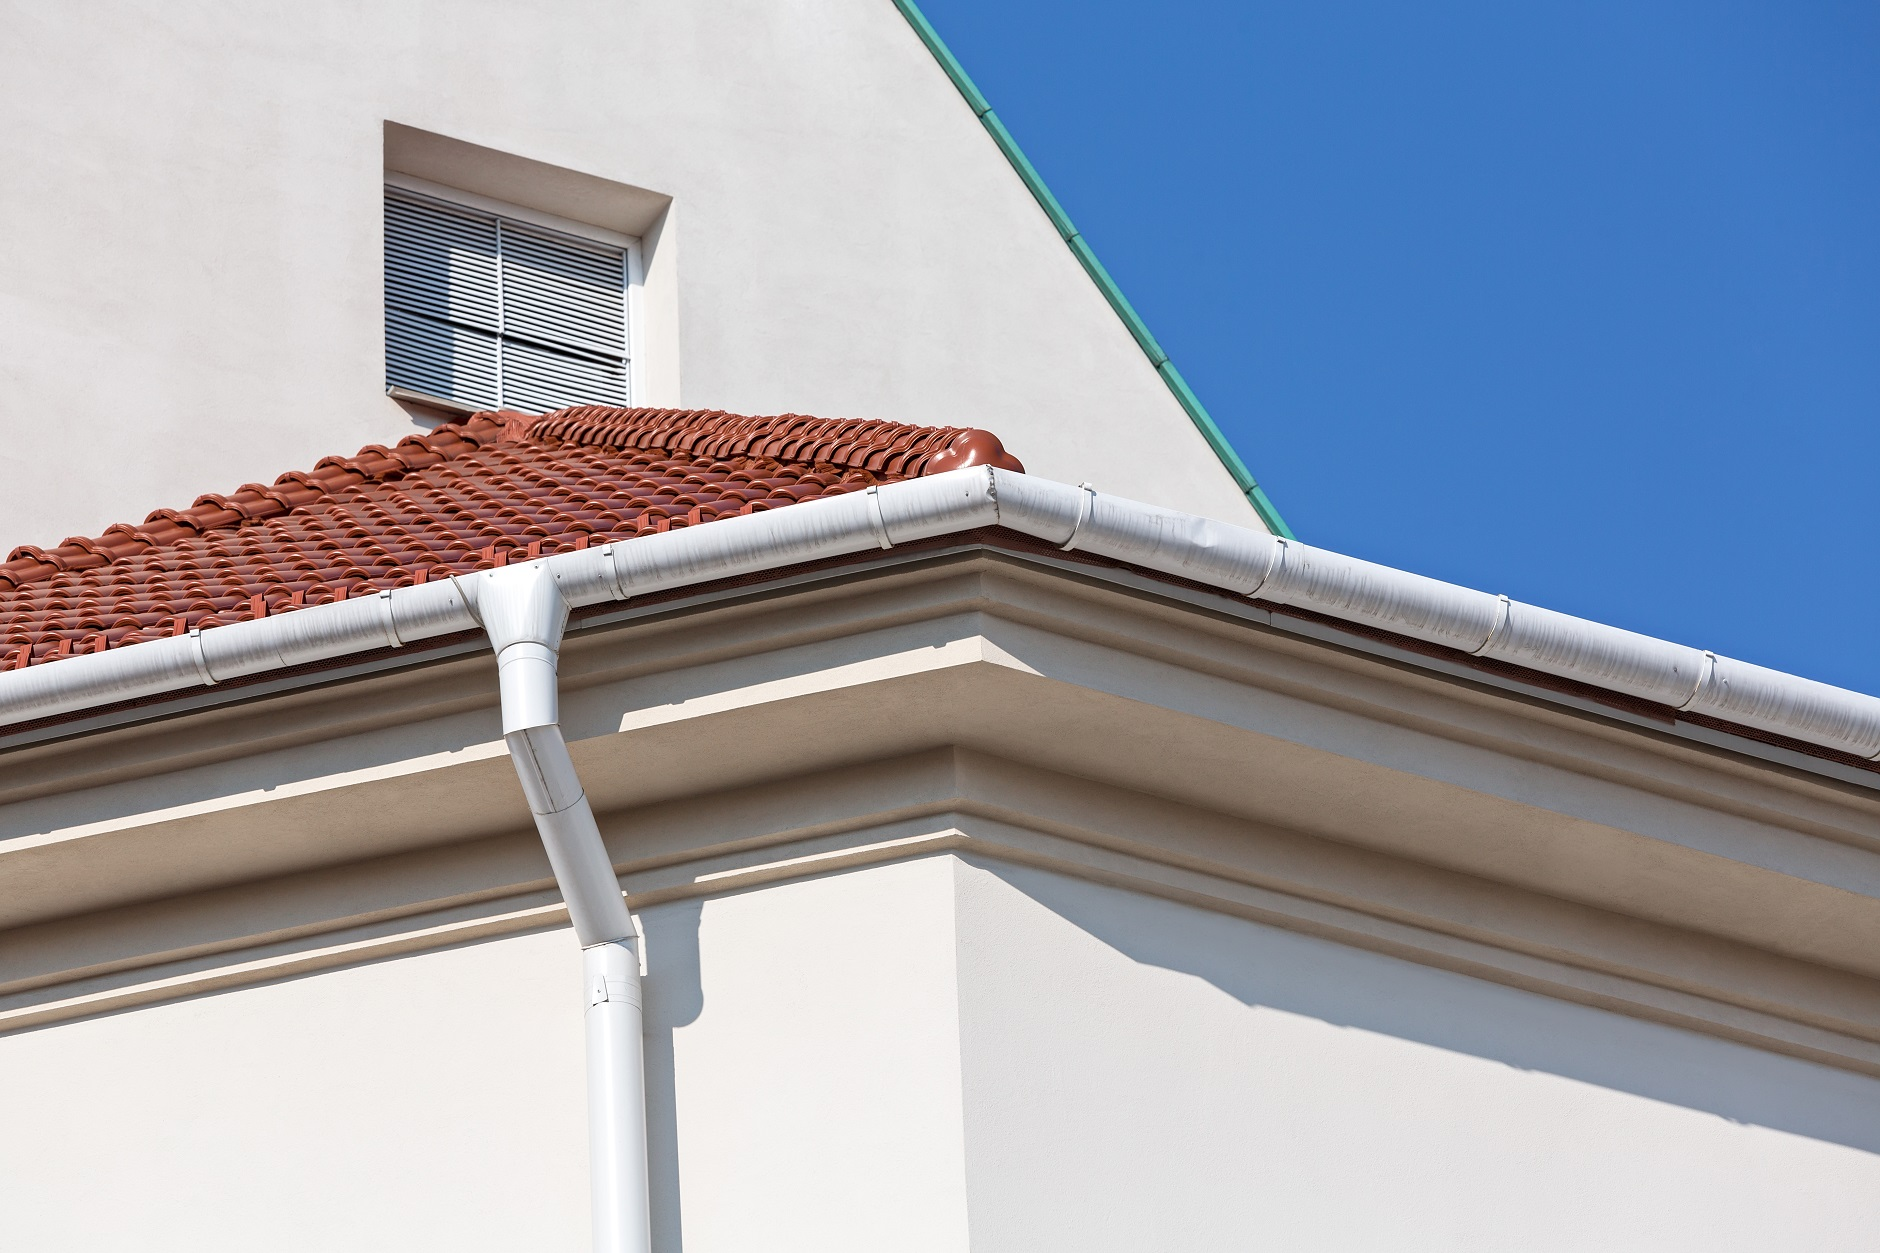 House corner with rain gutter